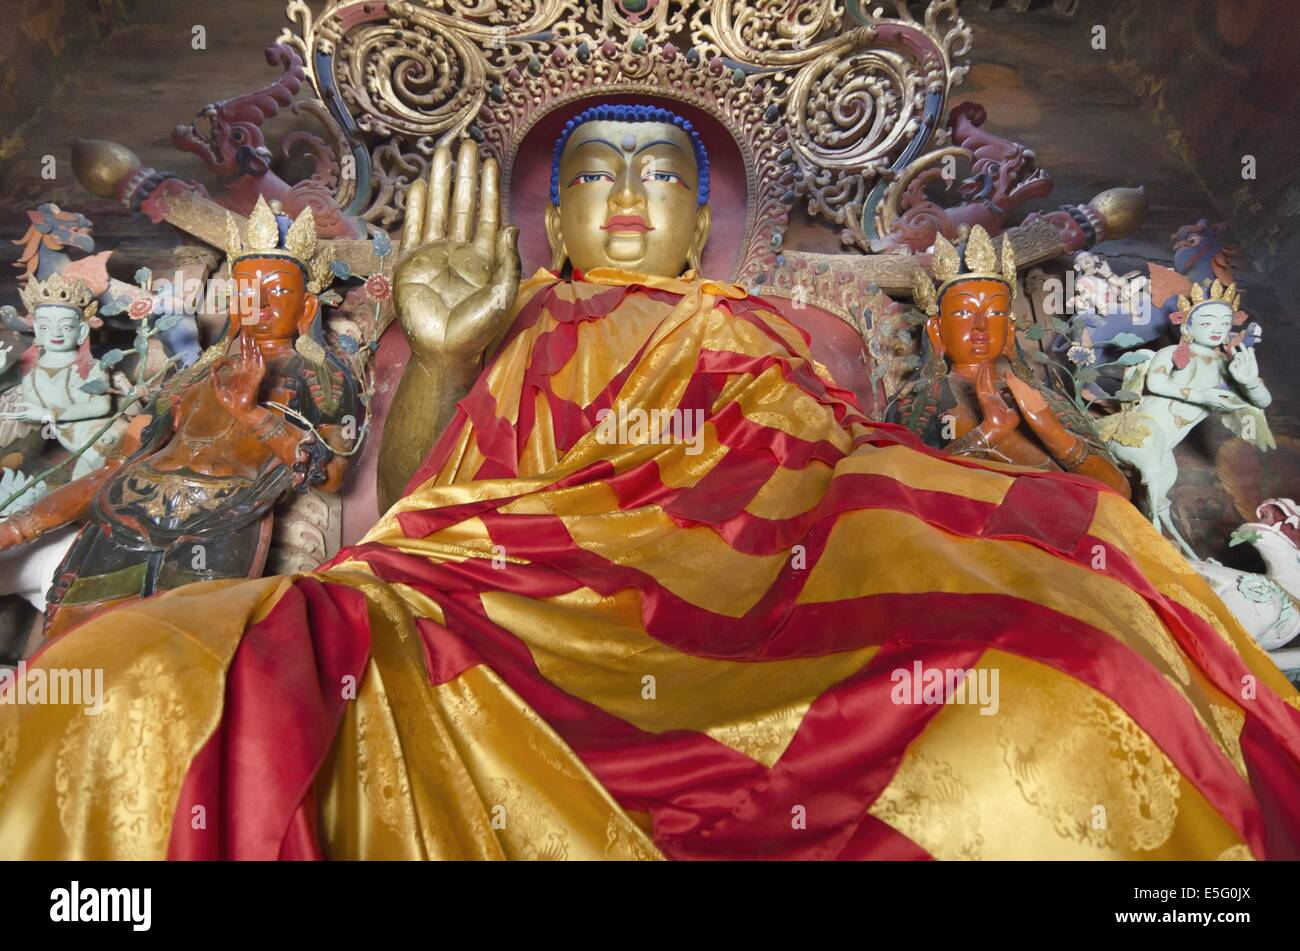 Sitting Buddha statue in the Gyantse Kumbum, a multi-storied aggregate of Buddhist chapels, in Tibet - Stock Image